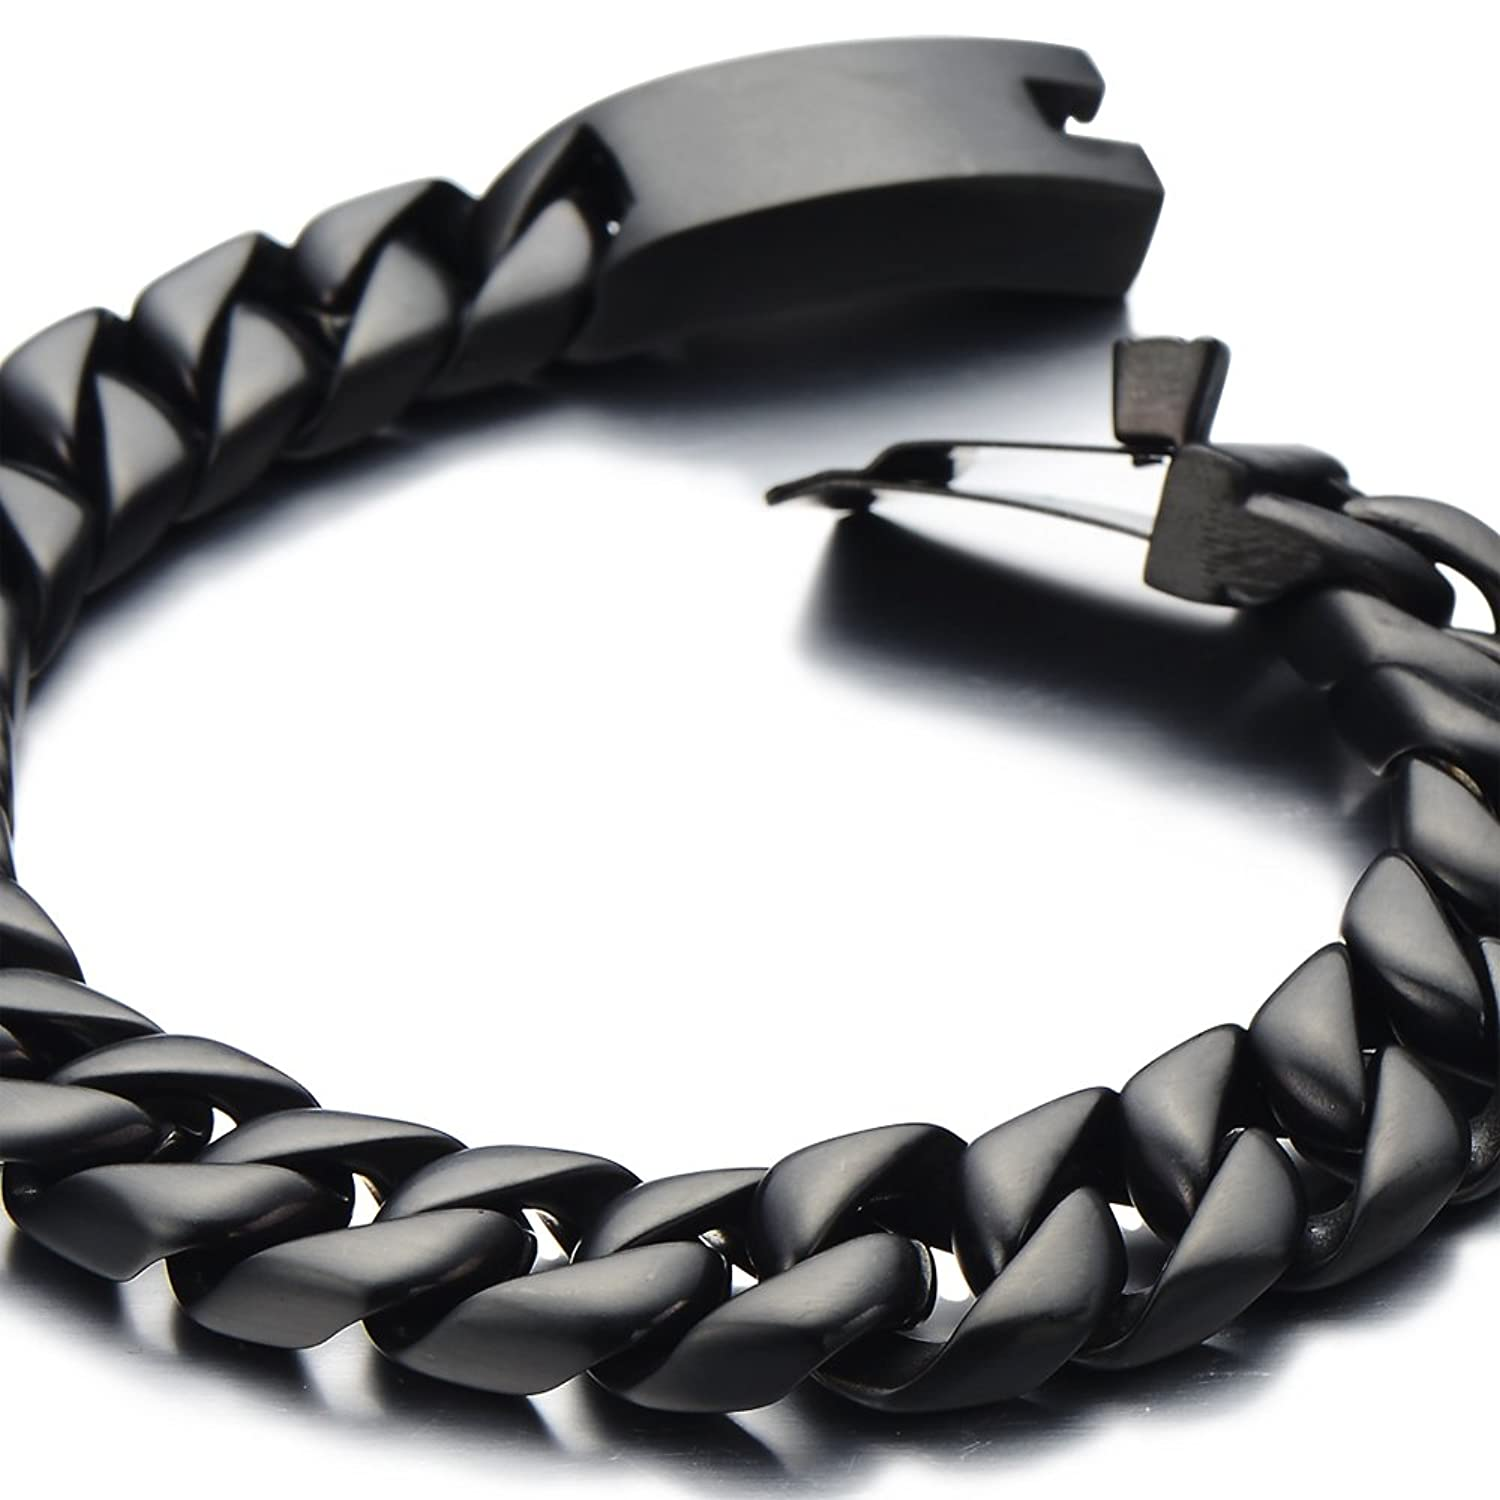 id steel jewelry az black ssbq cuban bling mens hbj stainless bracelet link chain curb